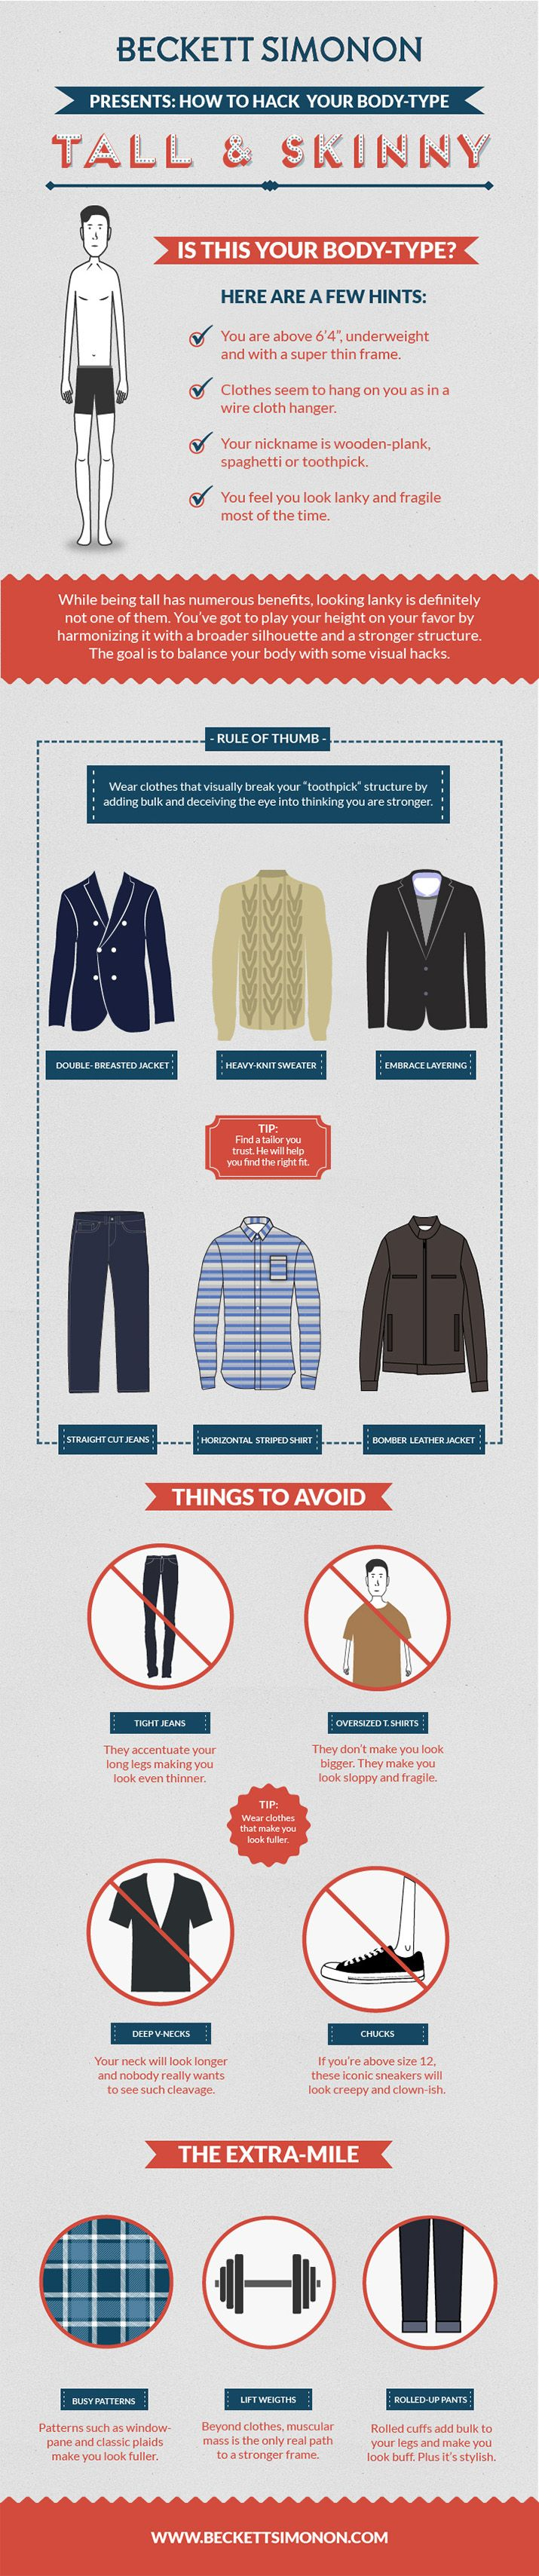 If your Body Type is Tall & Skinny, this infographic is for you. | Follow rickysturn/mens-fashion